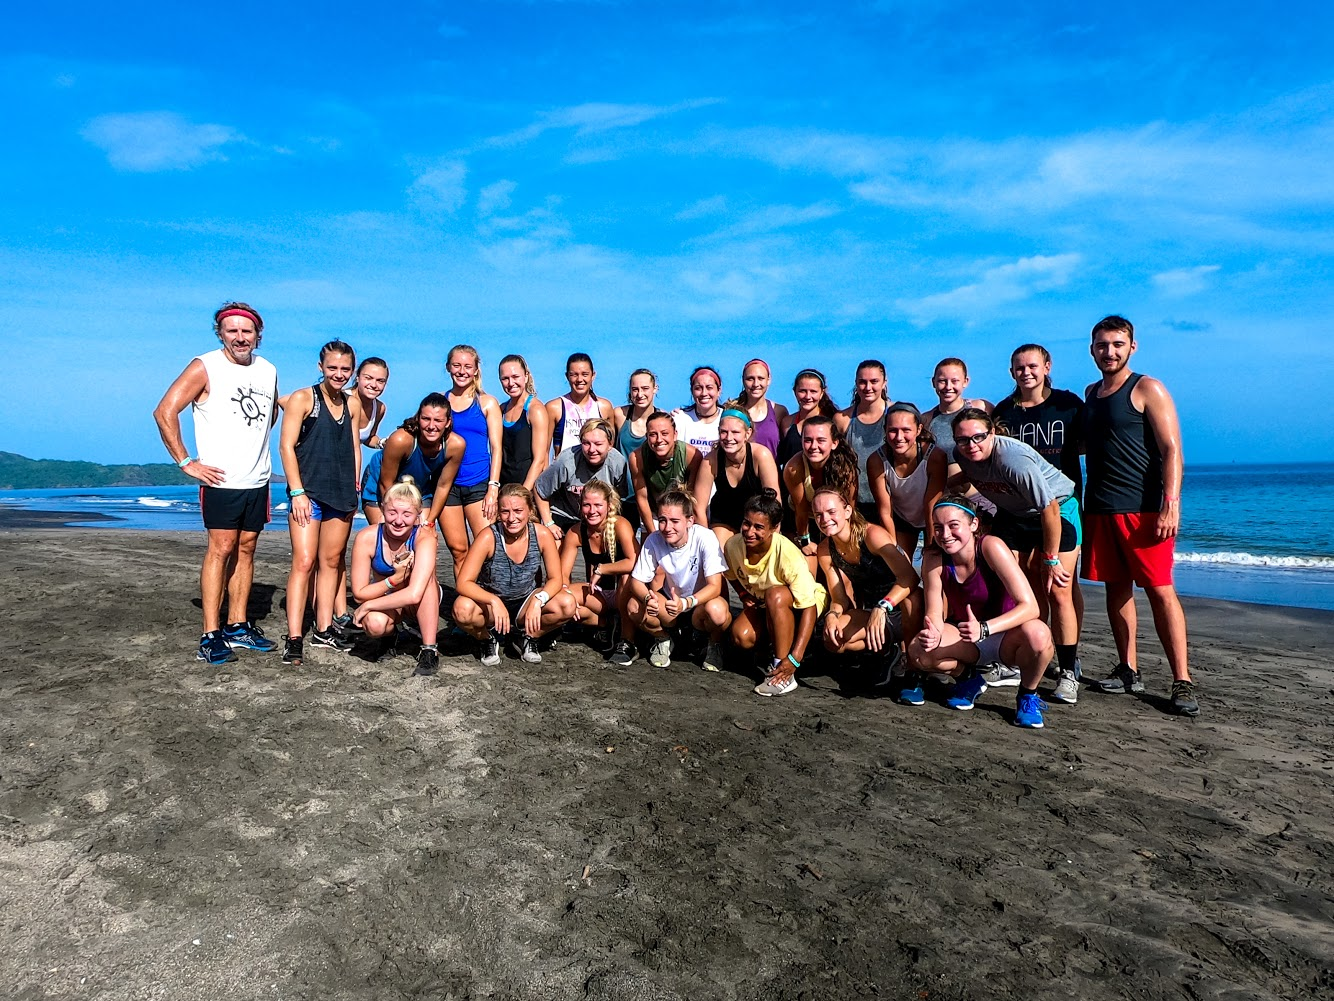 Photo of soccer team on a beach in Costa Rica